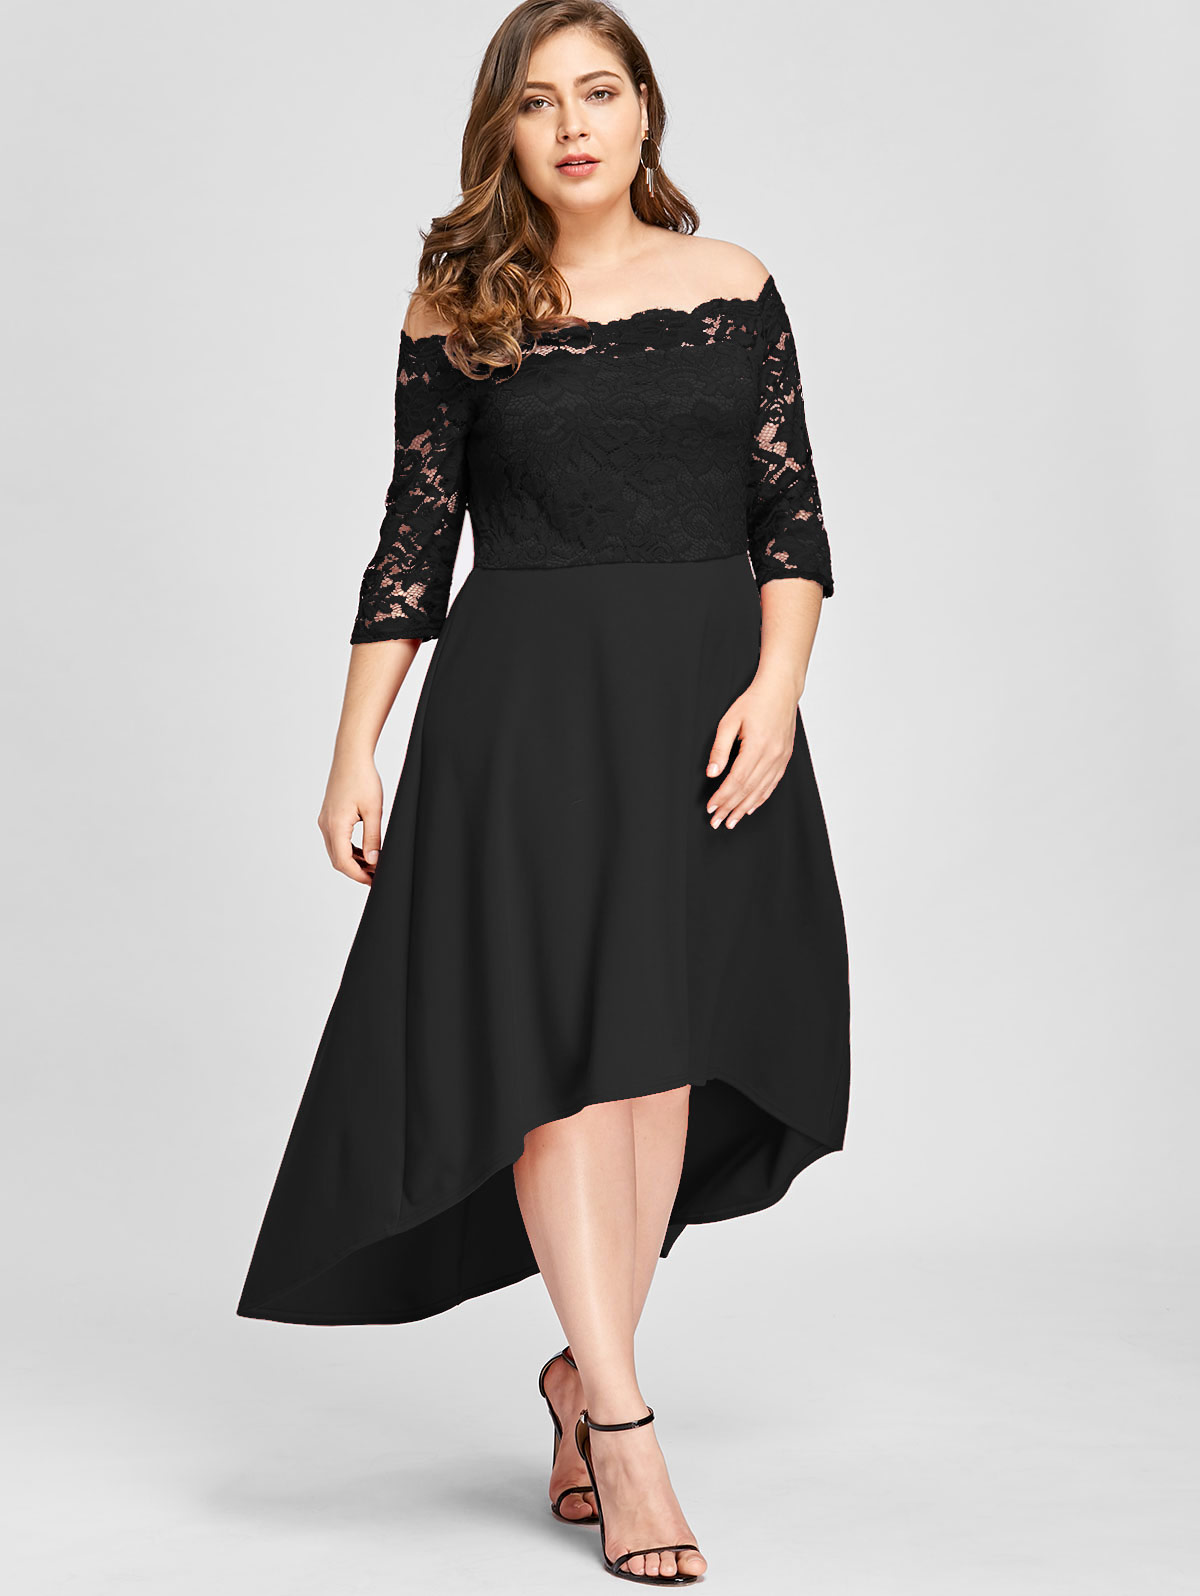 982a8d7a10 Dresses Length:Ankle-Length Neckline:Off The Shoulder Sleeve Length:3/4  Length Sleeves Embellishment:Lace Pattern Type:Solid With Belt:No Season: Spring,Fall ...